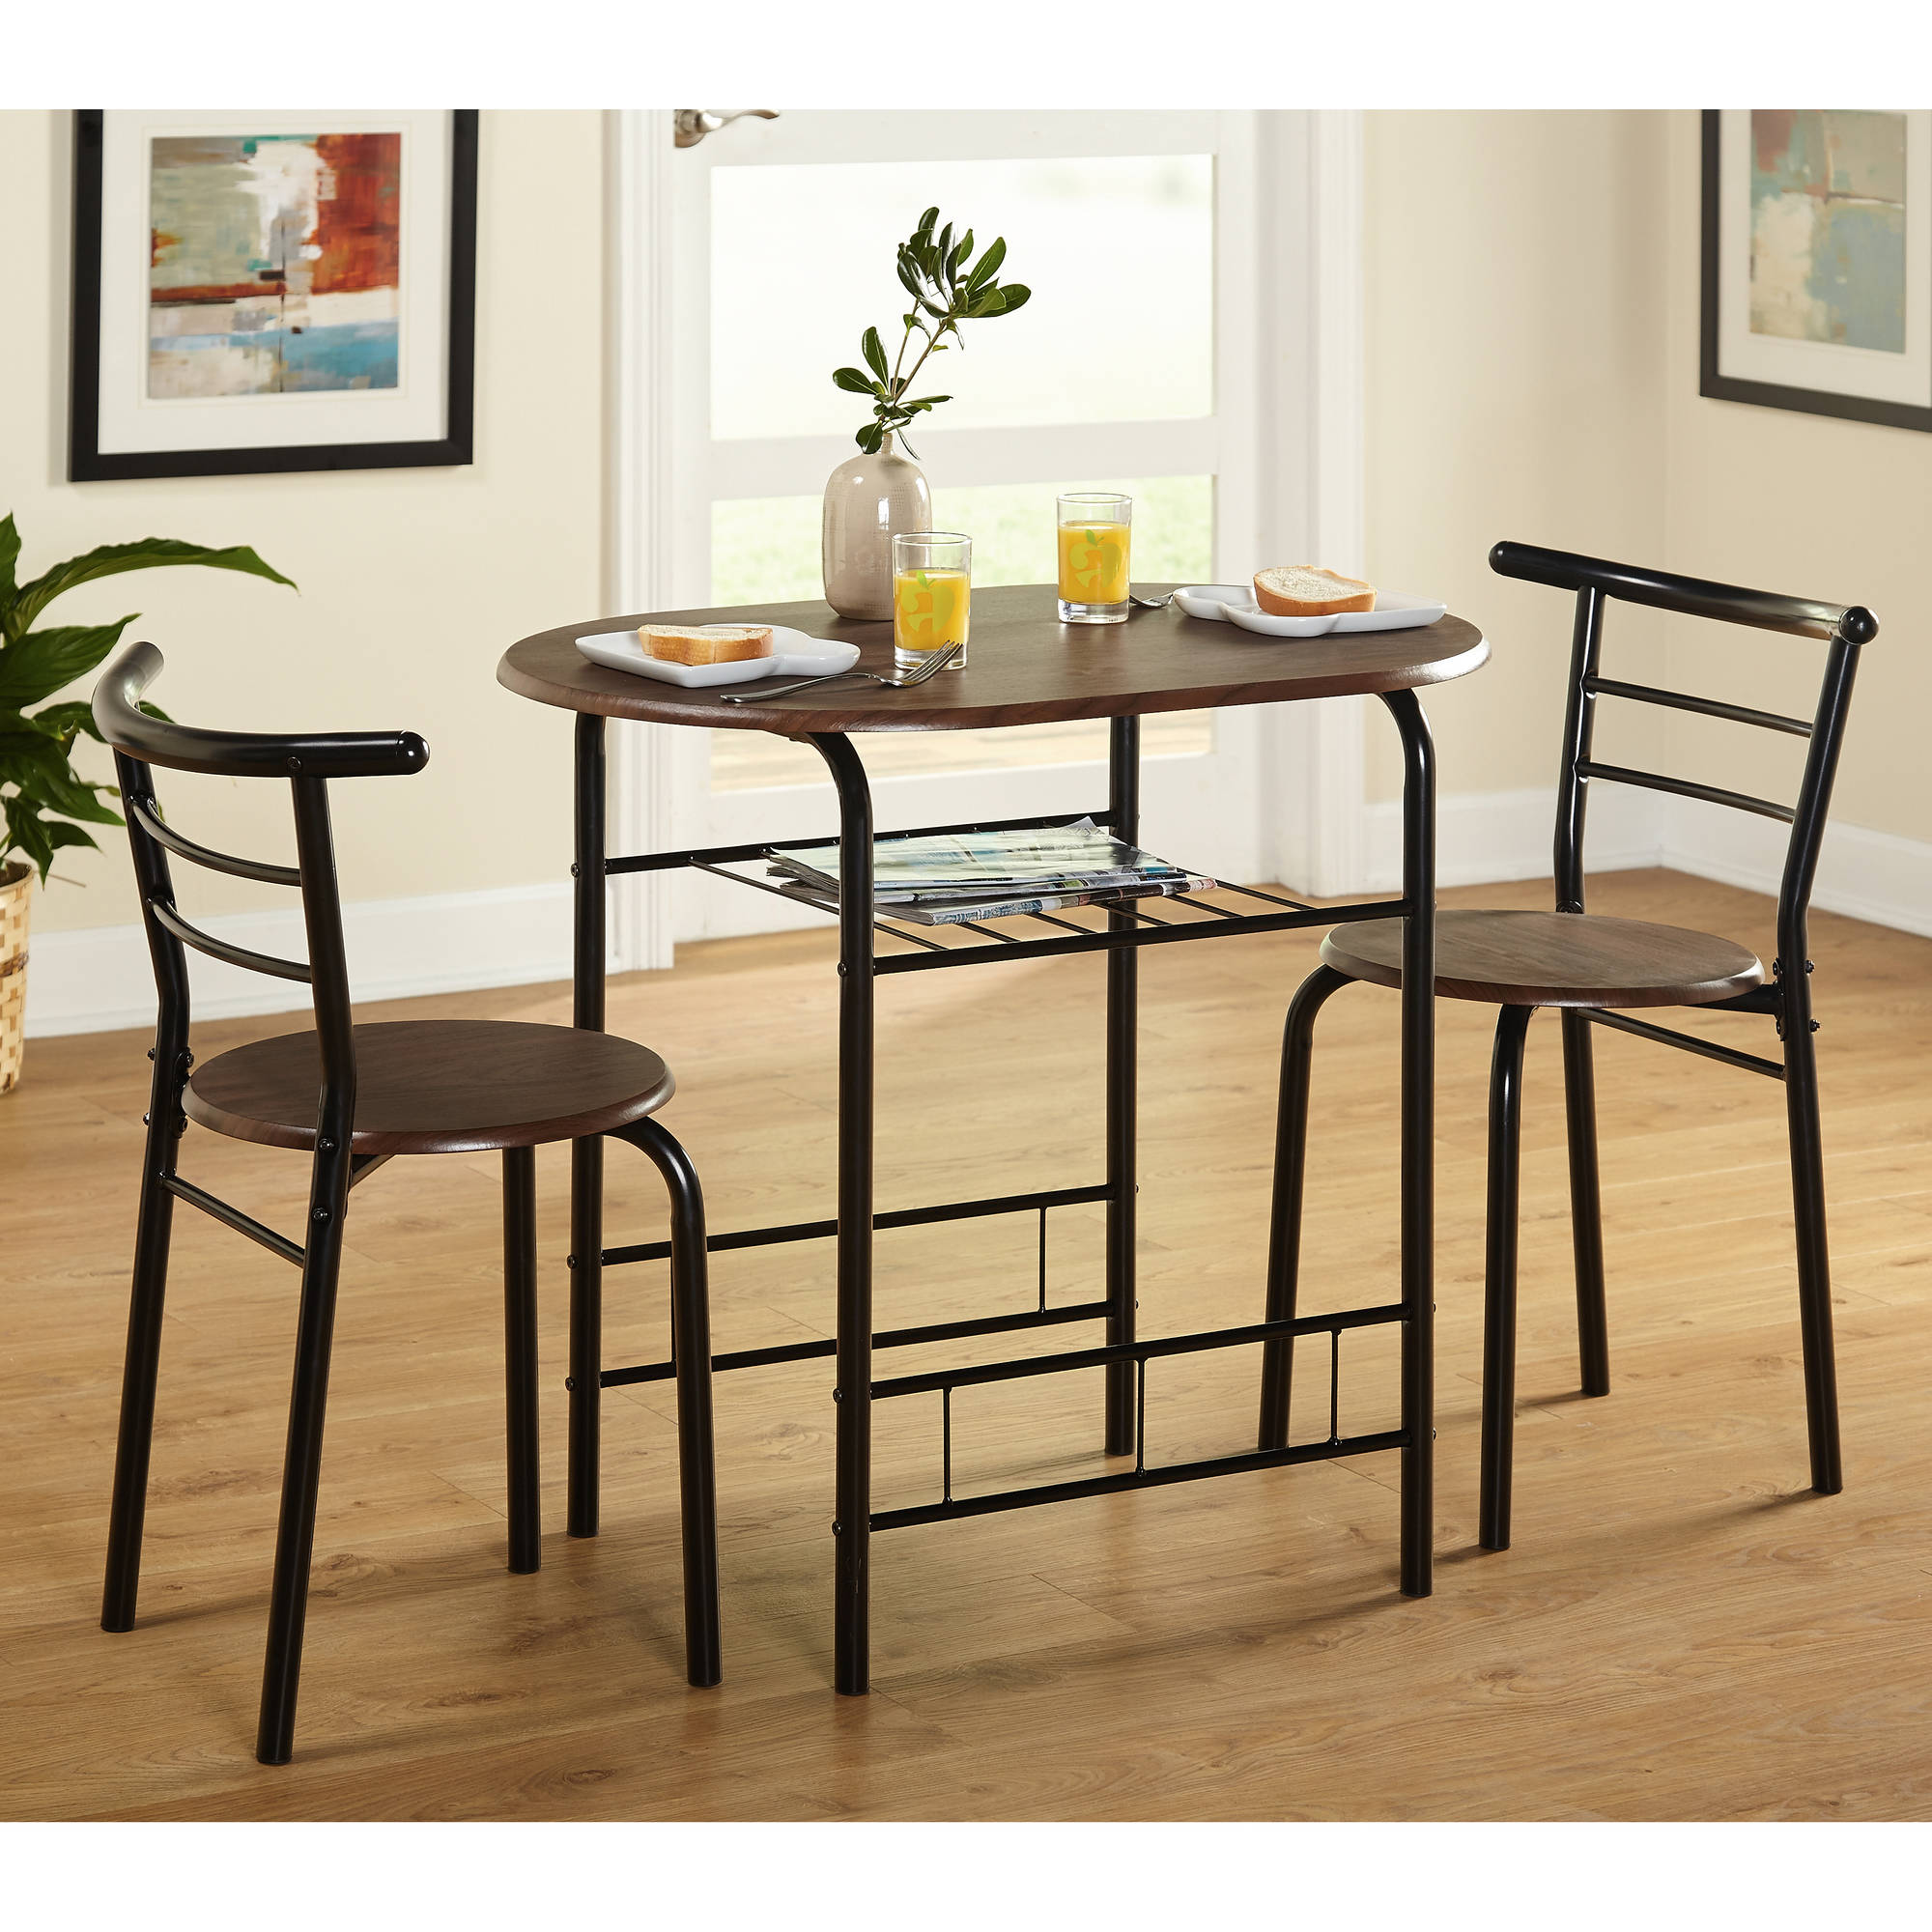 Amazing 3 Piece Bistro Set, Multiple Colors